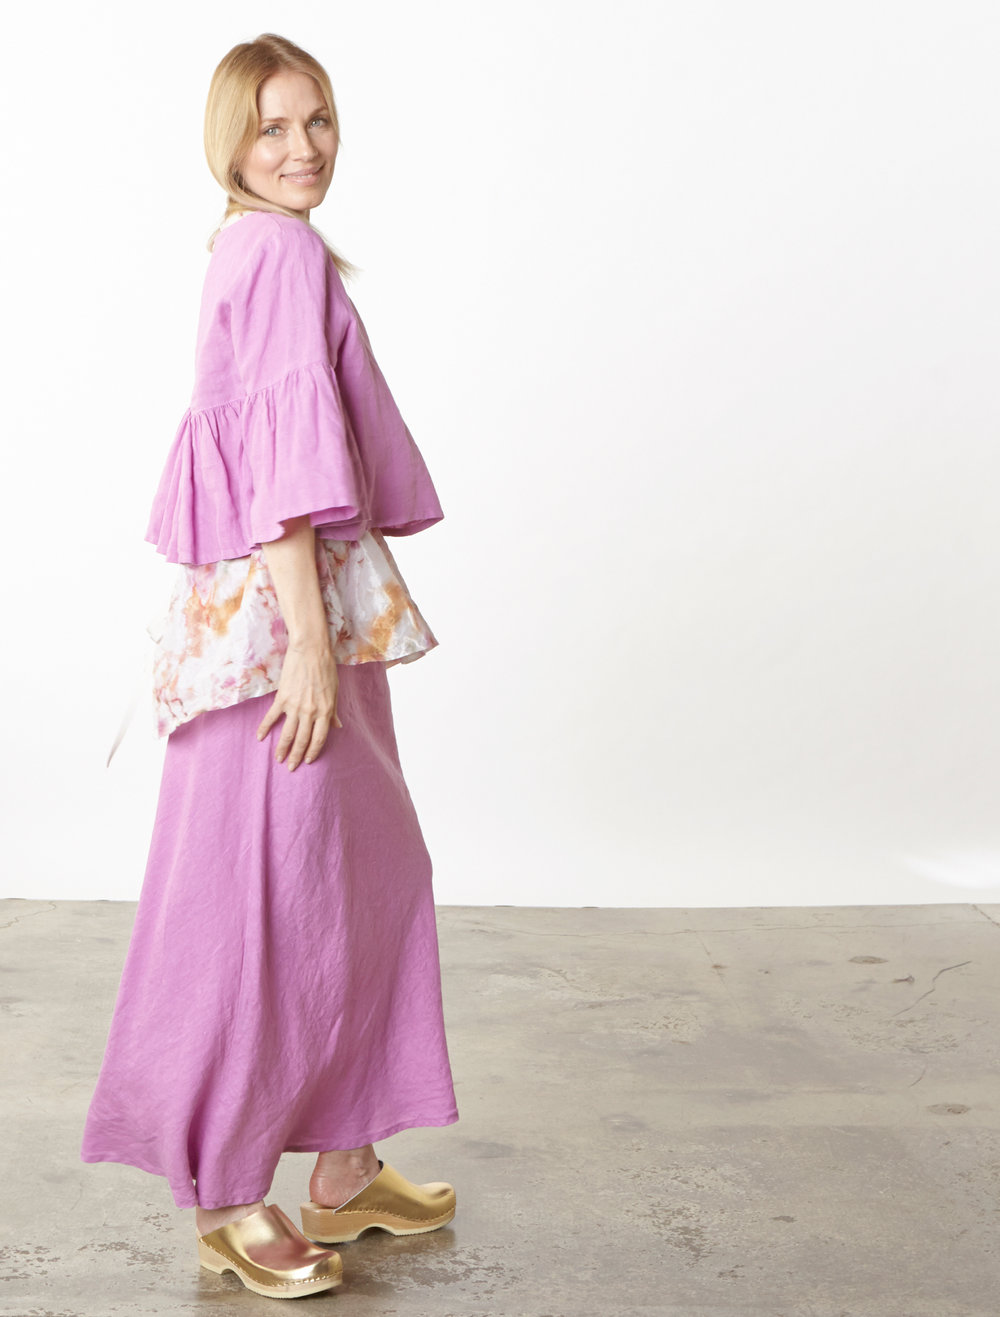 Frida Shirt, Long Bias Skirt in lxia Light Linen, Lois Tank in Versailles Italian Memory Crunch Taffeta